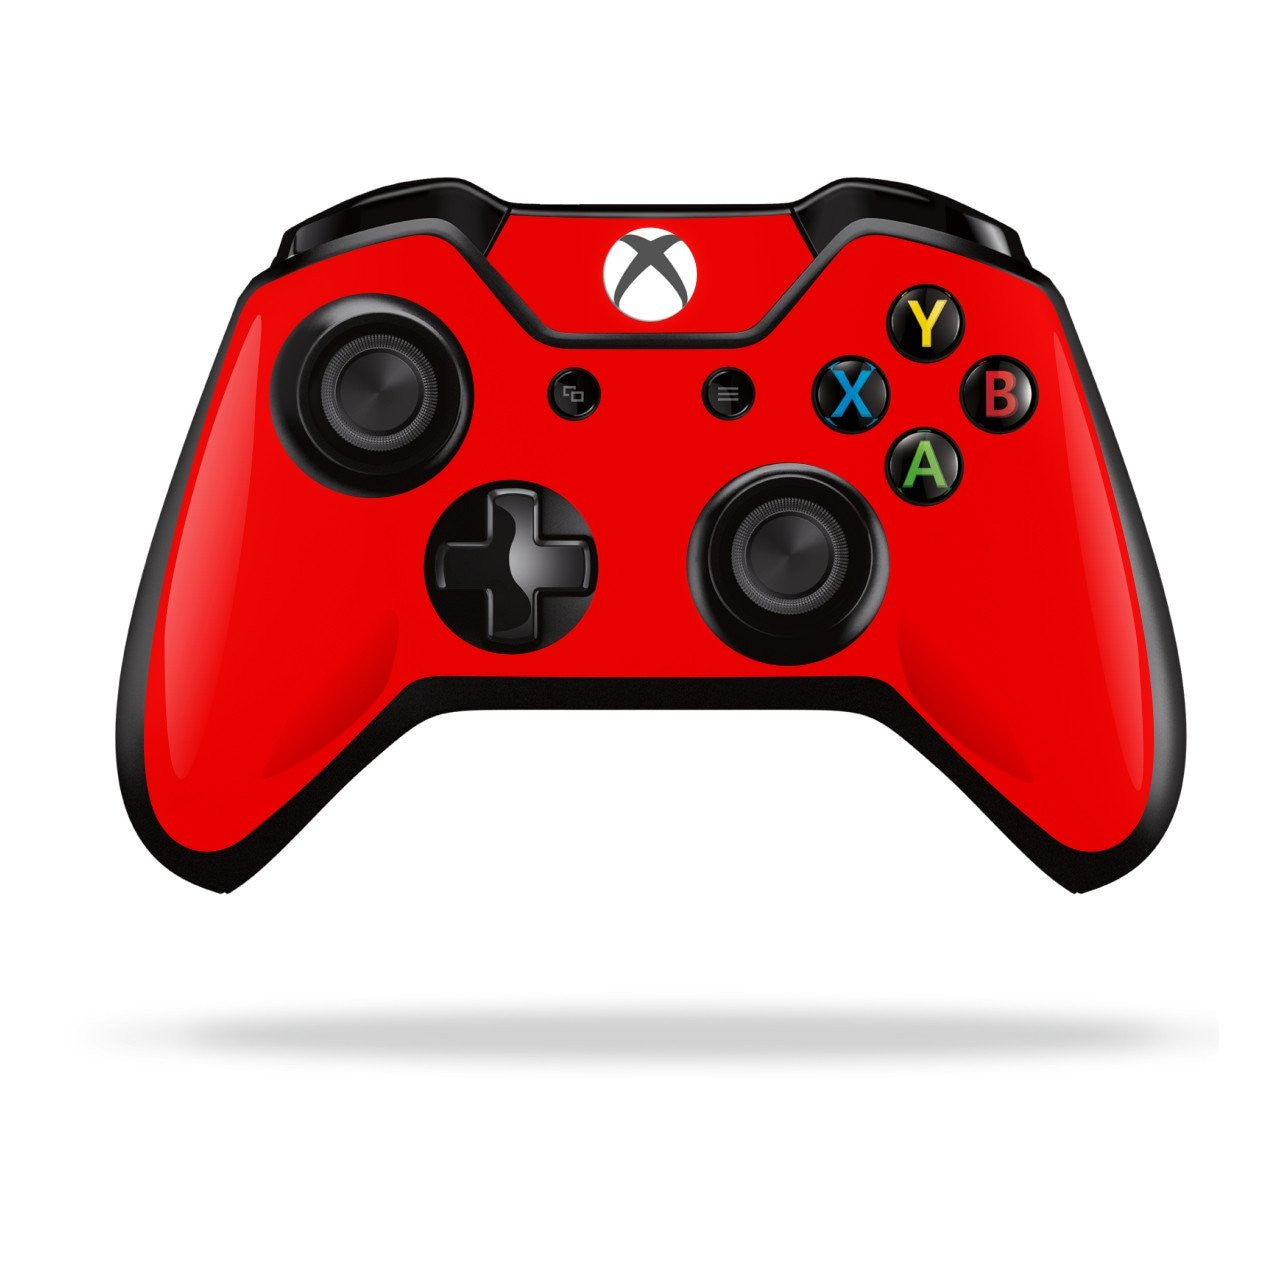 Xbox One Controller Red MATT Matte Skin Wrap Sticker Decal Protector Cover by EasySkinz